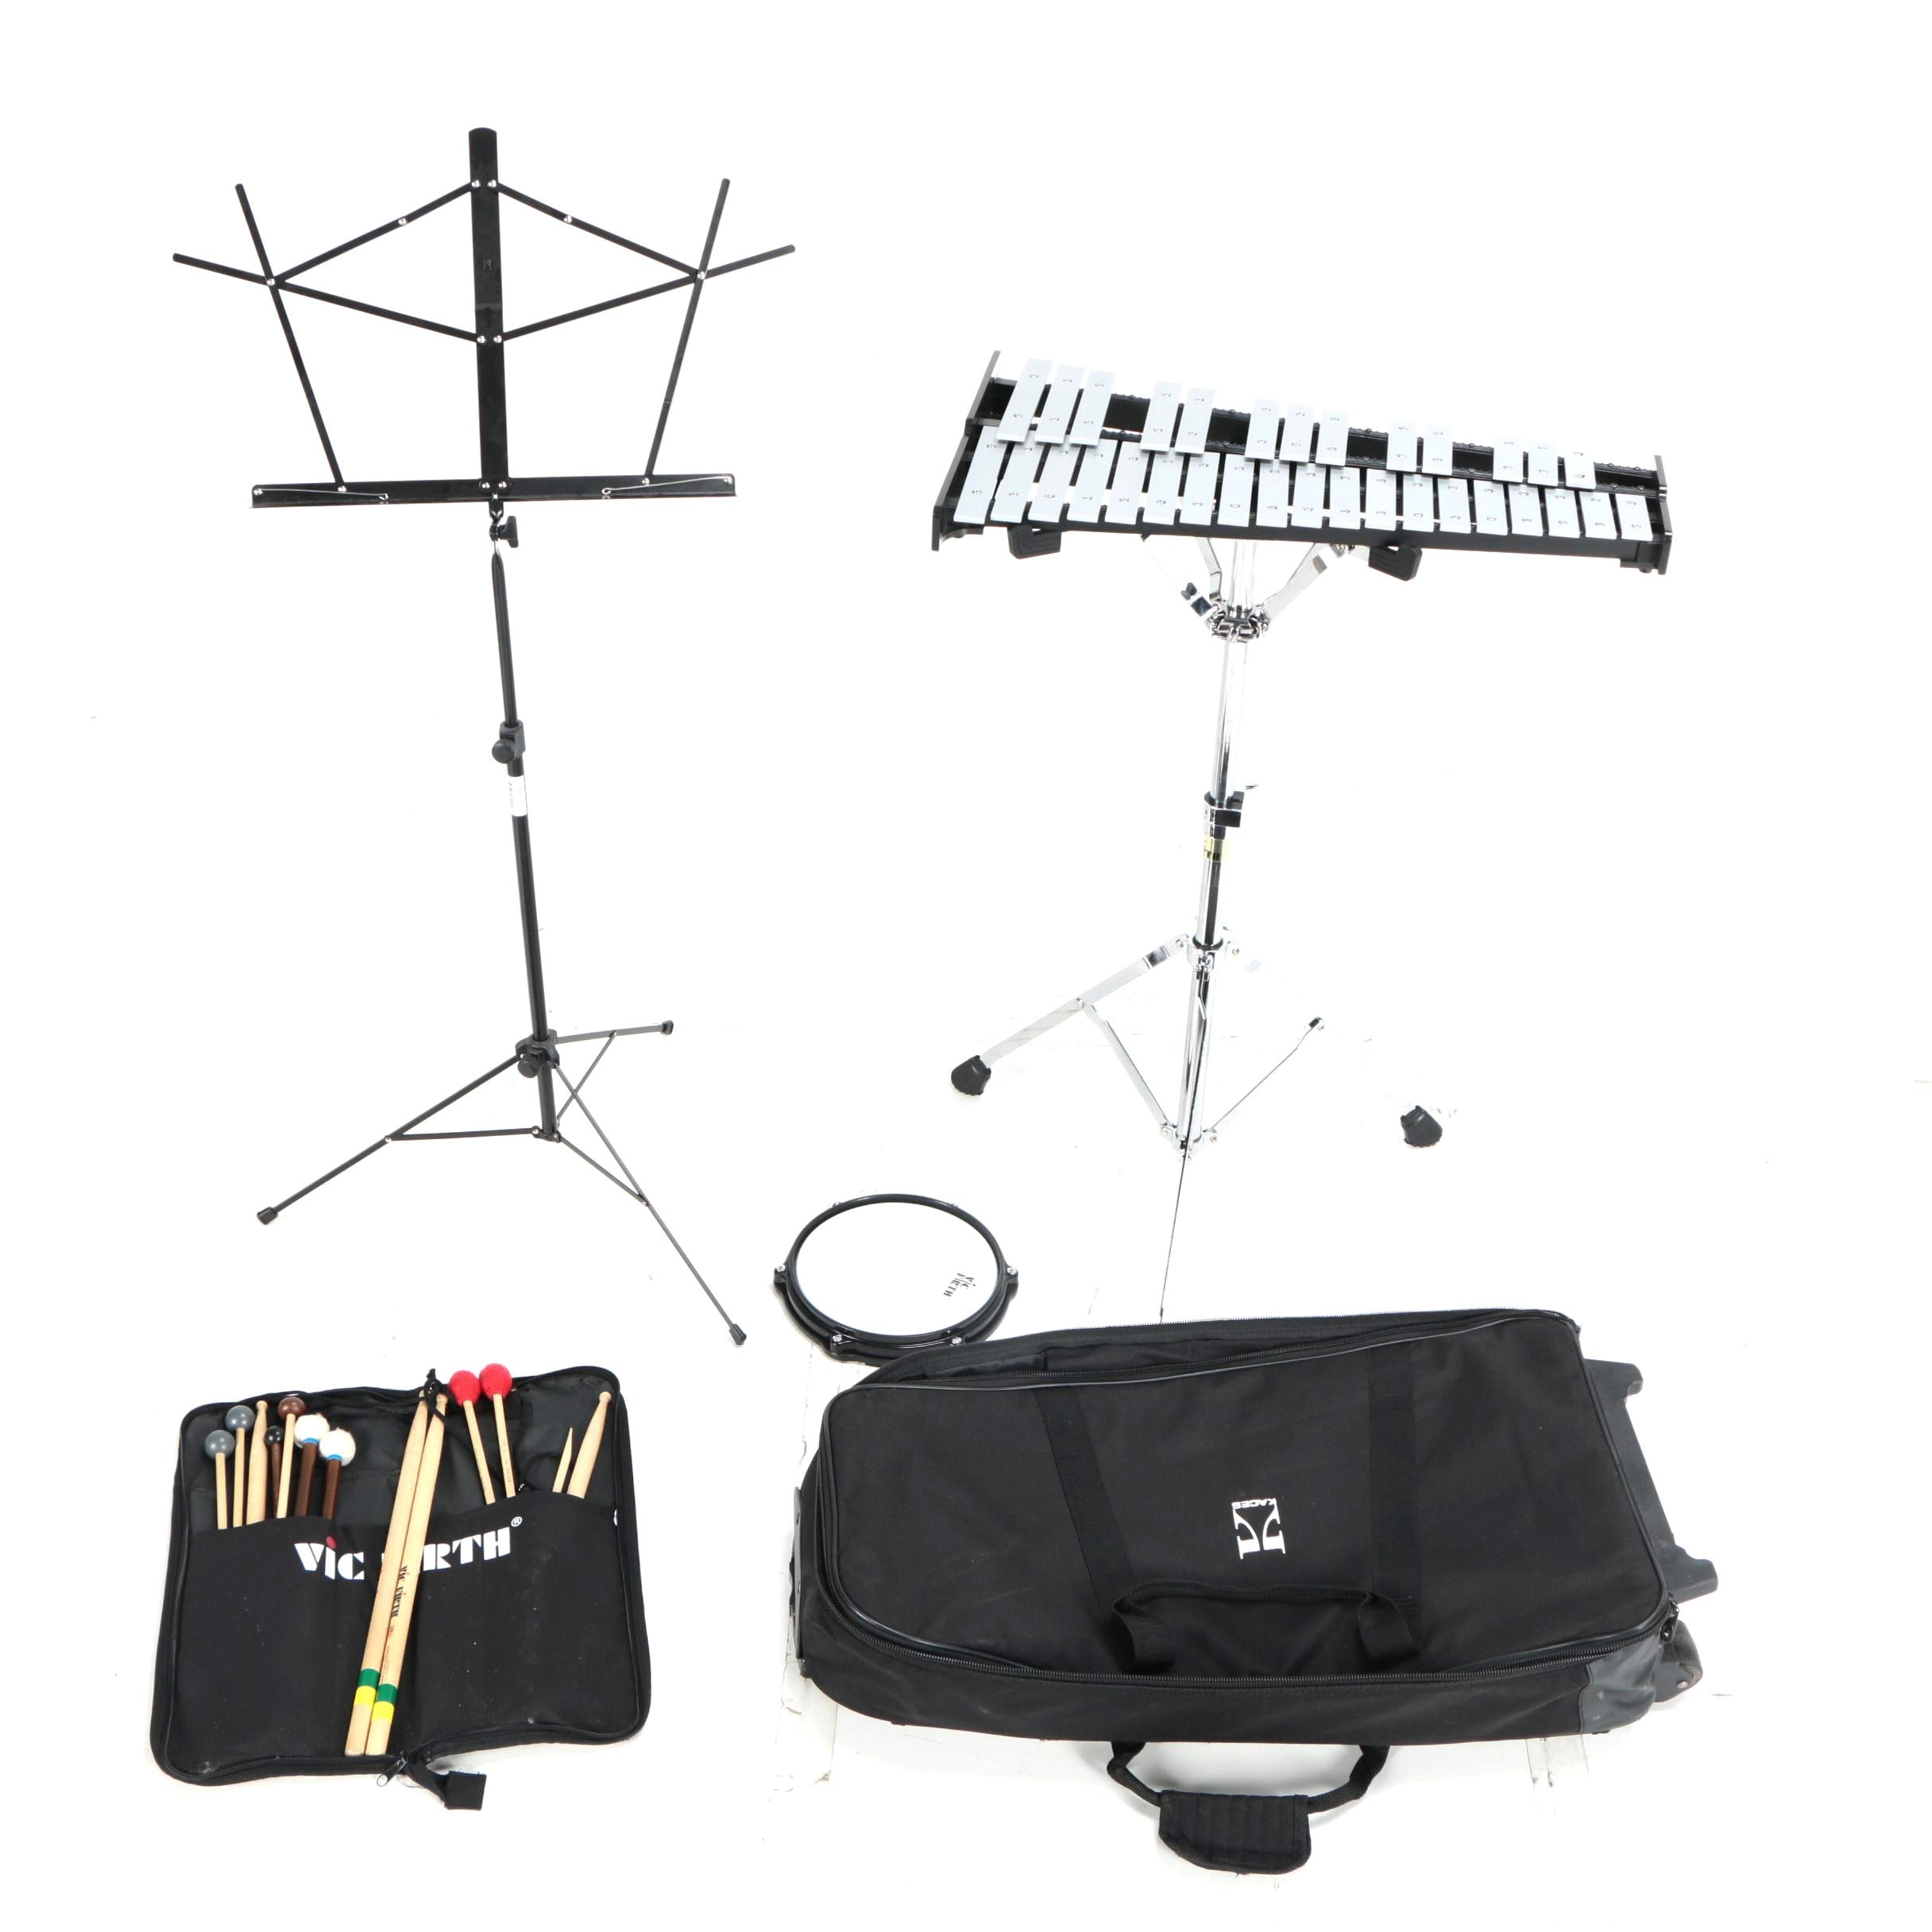 Vic Firth Glockenspiel with Stand, Practice Pad and Rolling Case